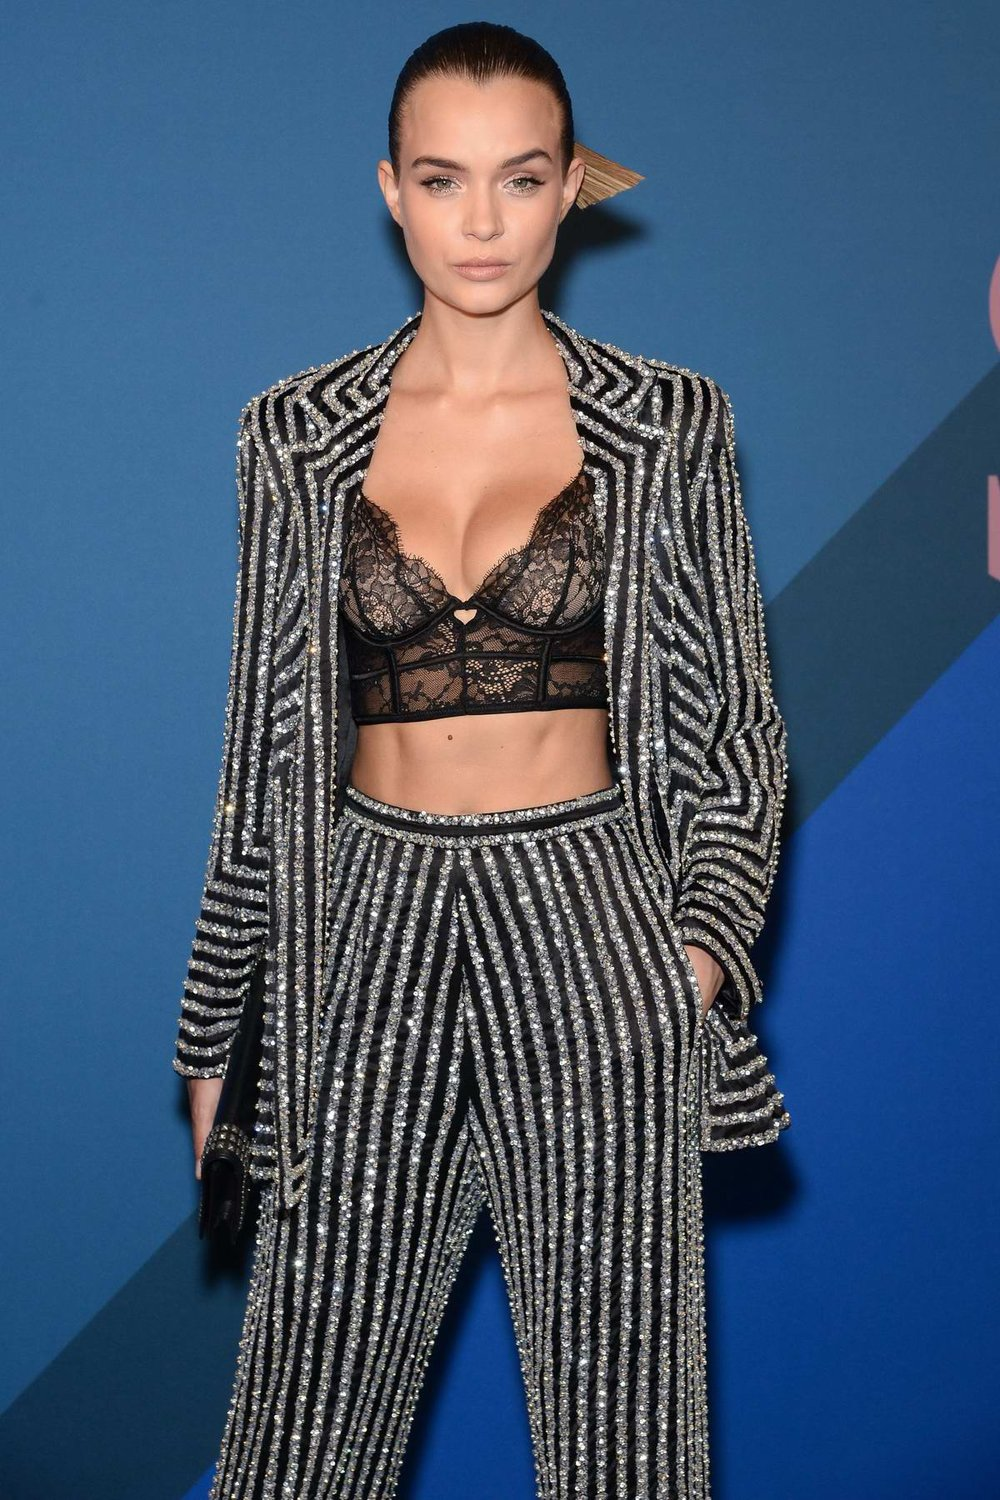 Josephine Skriver - This outfit is an unique twist on your average pantsuit.